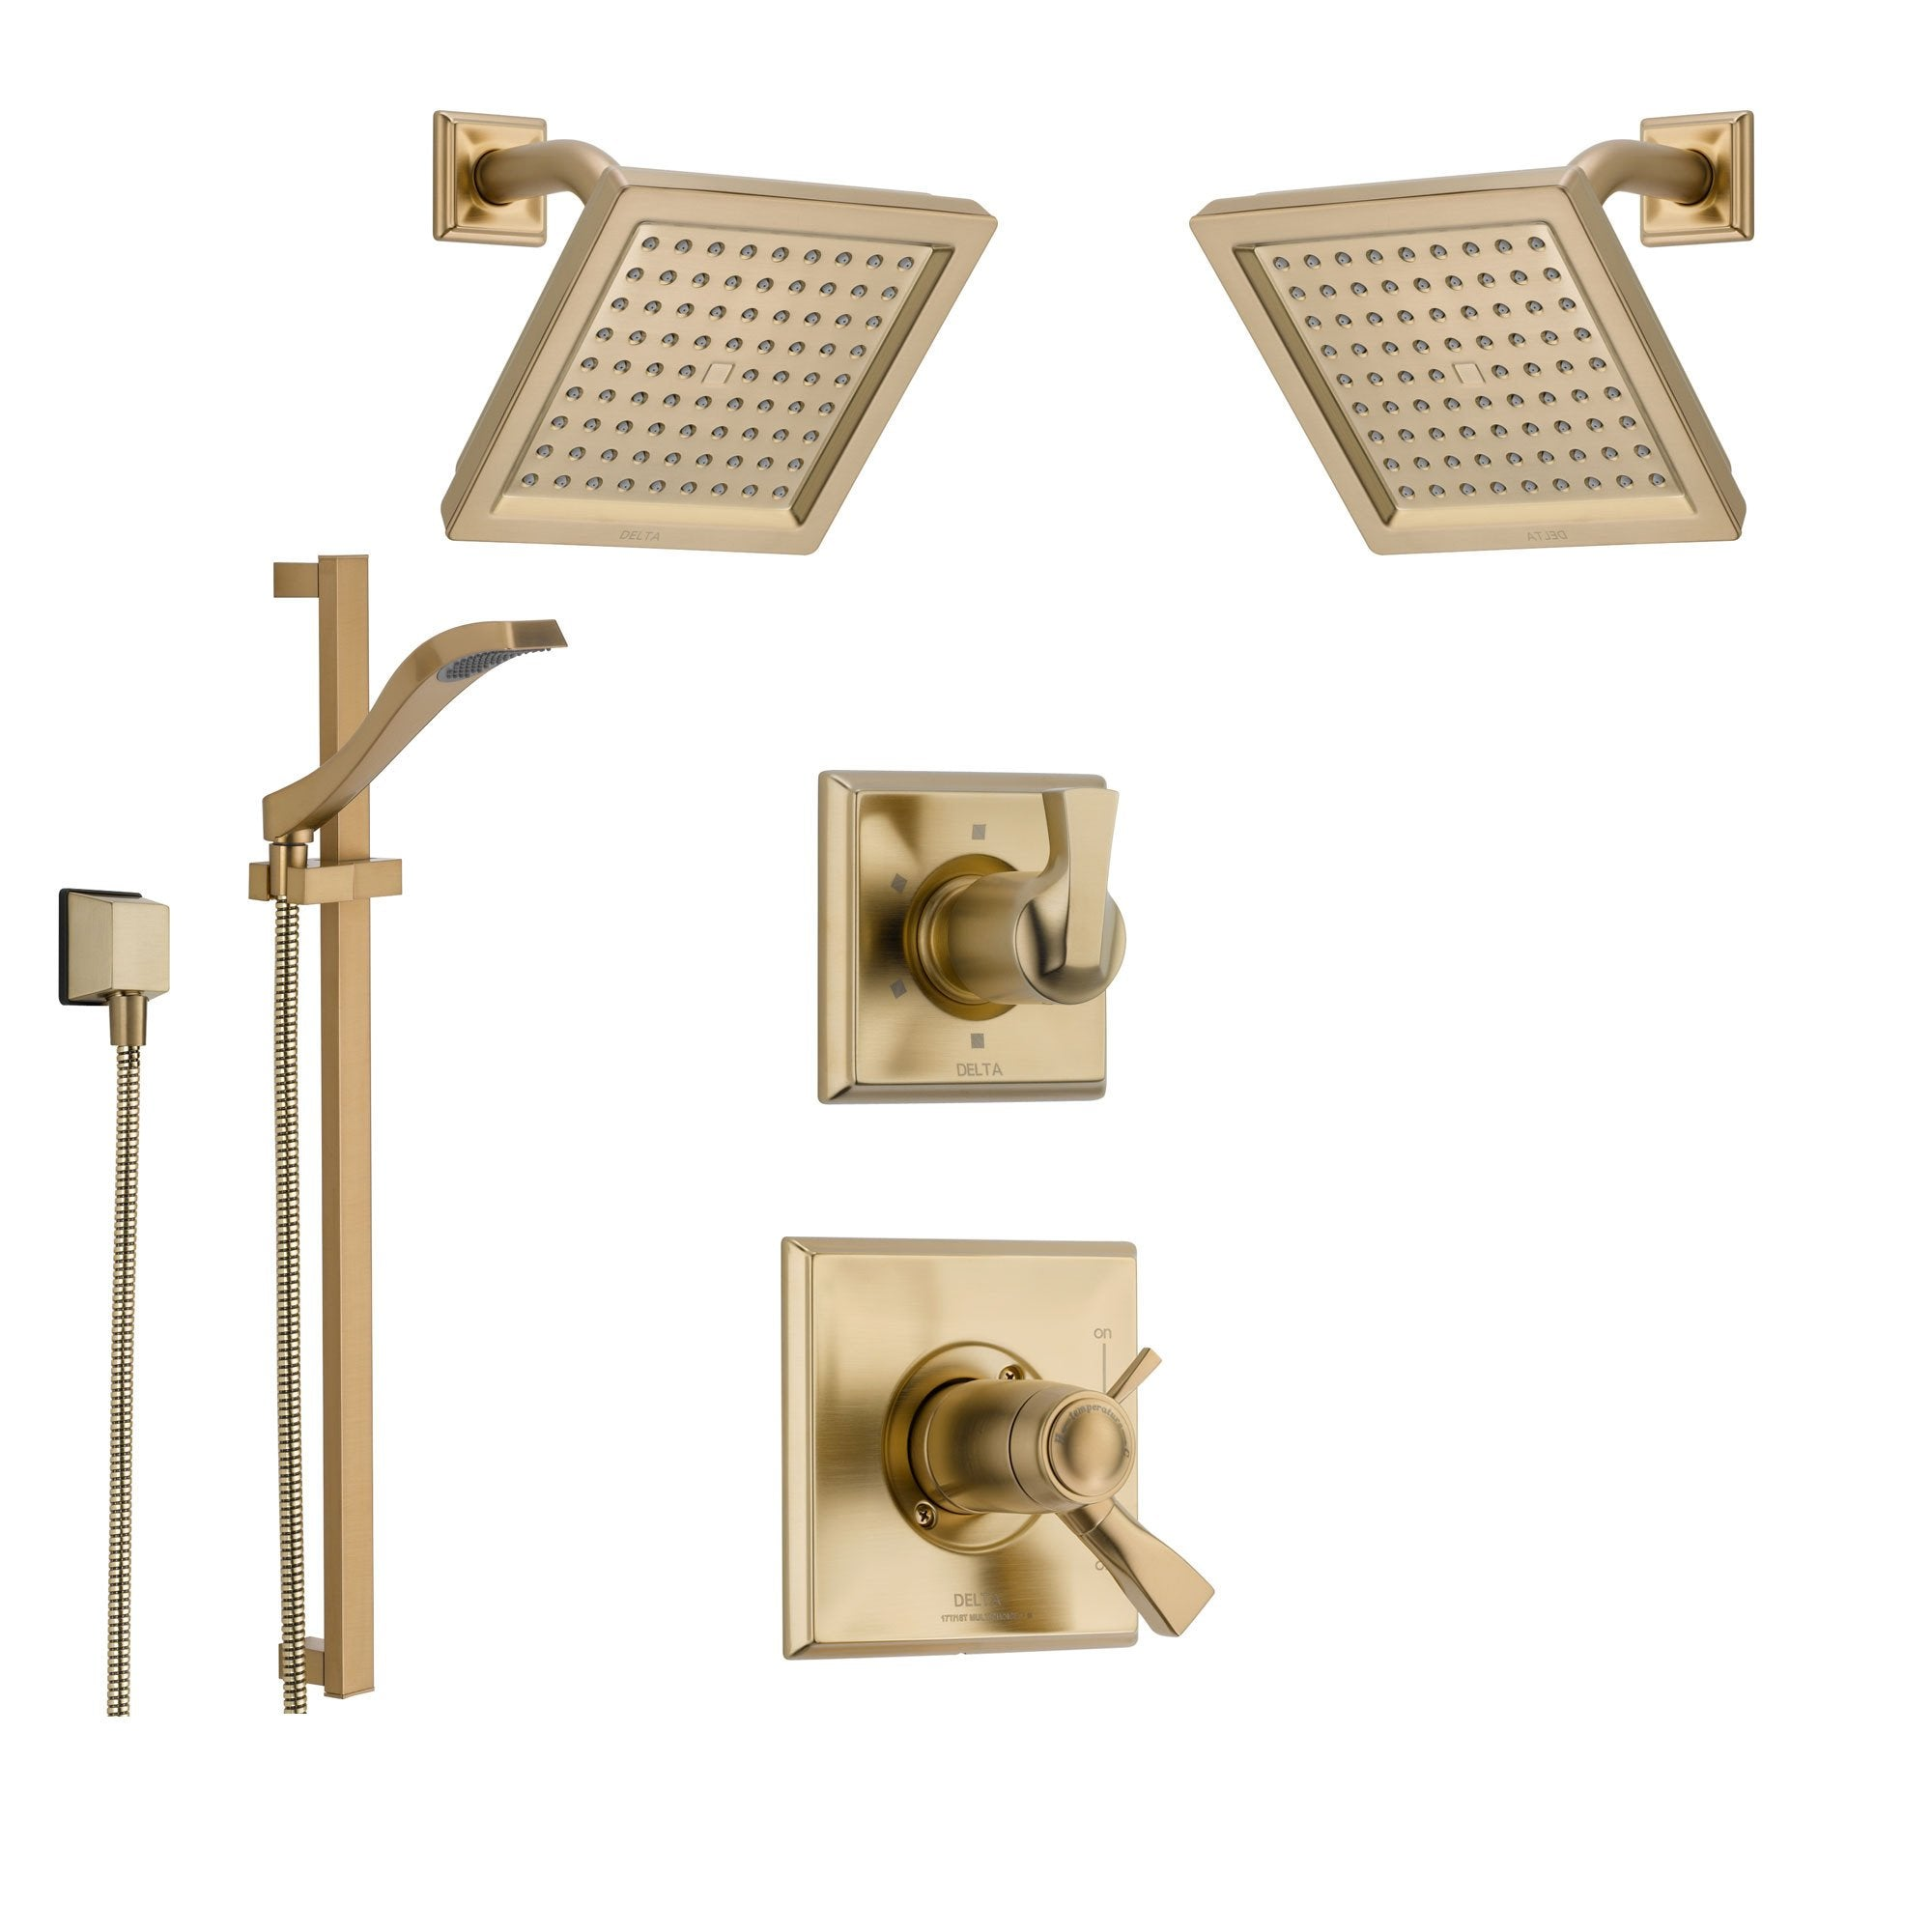 Delta Dryden Champagne Bronze Shower System with Thermostatic Shower Handle, 6-setting Diverter, 2 Modern Square Showerheads, and Hand Shower Spray SS17T5195CZ